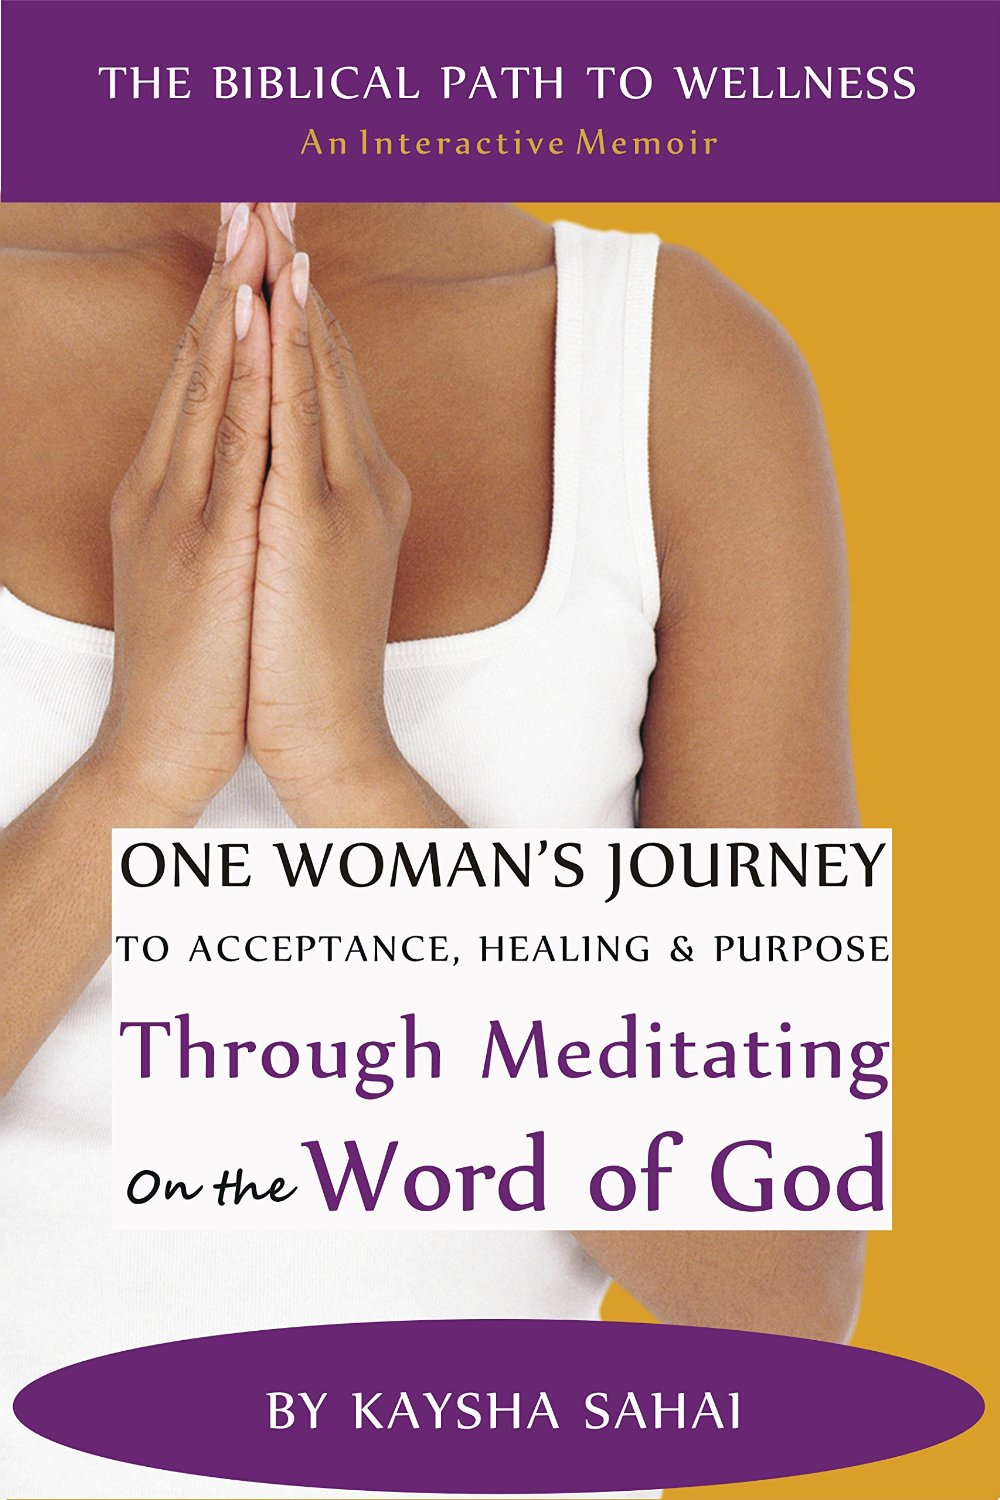 Biblical Meditation and Well-Being